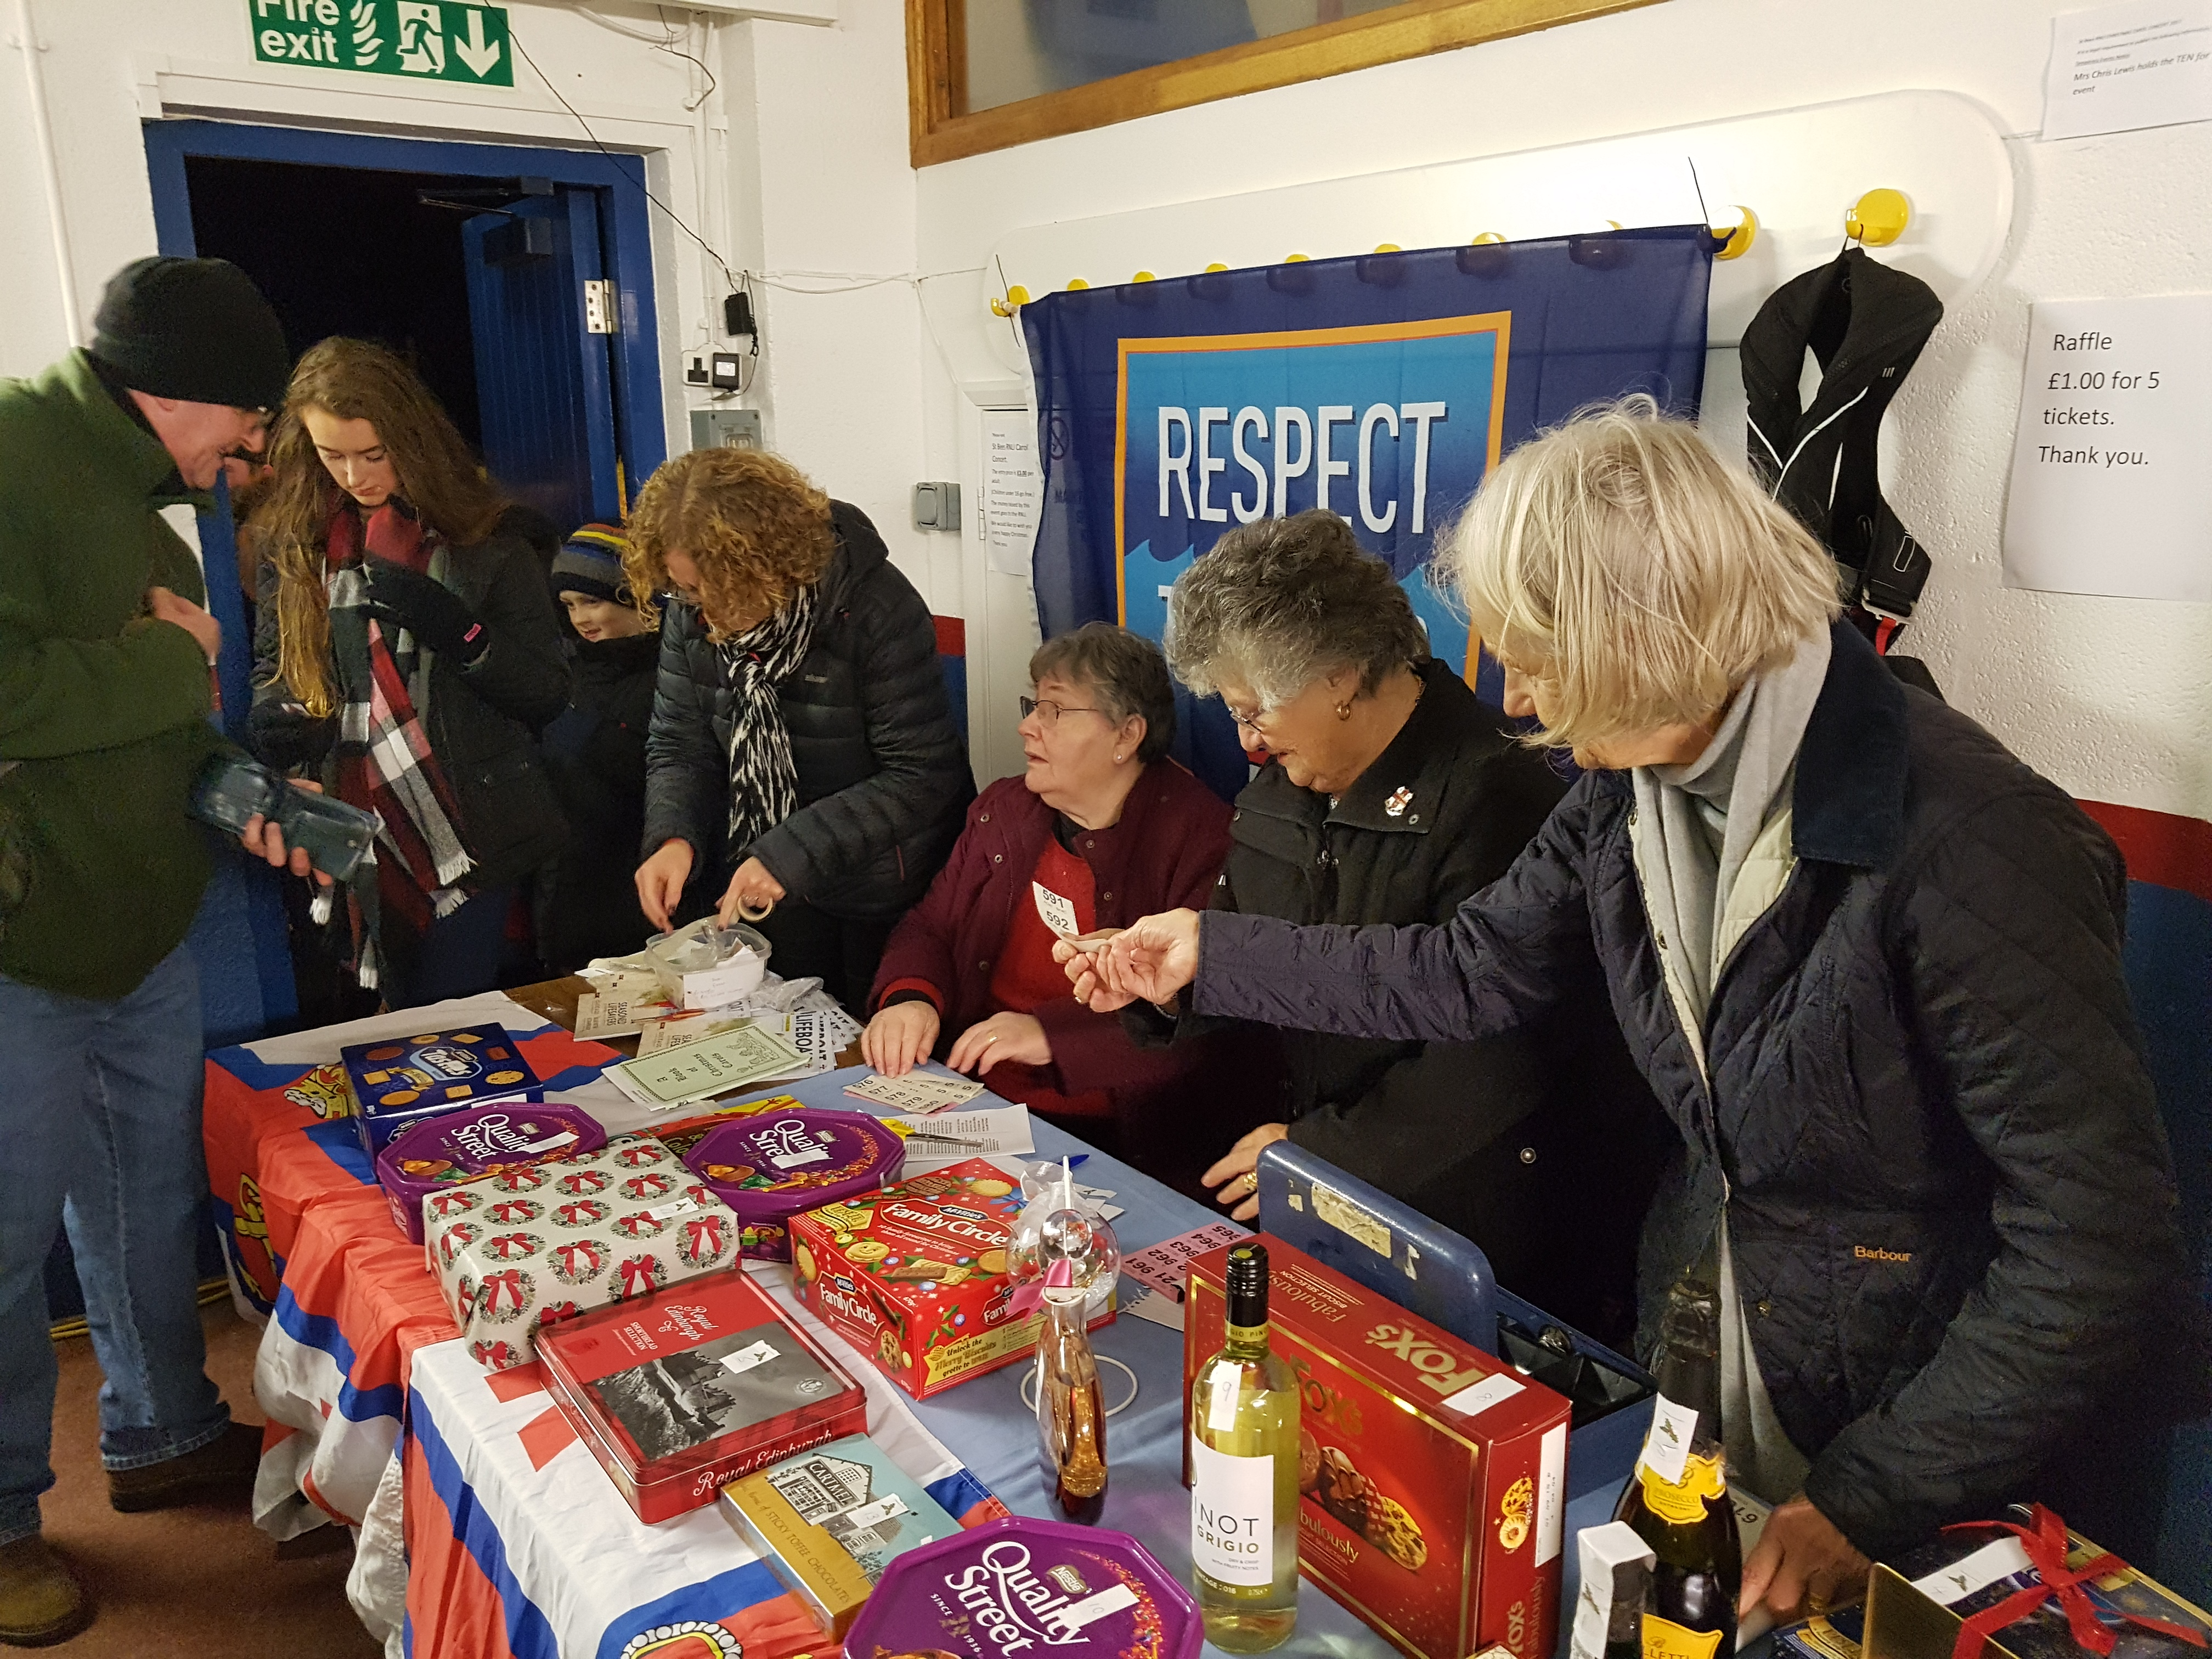 Members of St Bees Guild selling raffle tickets